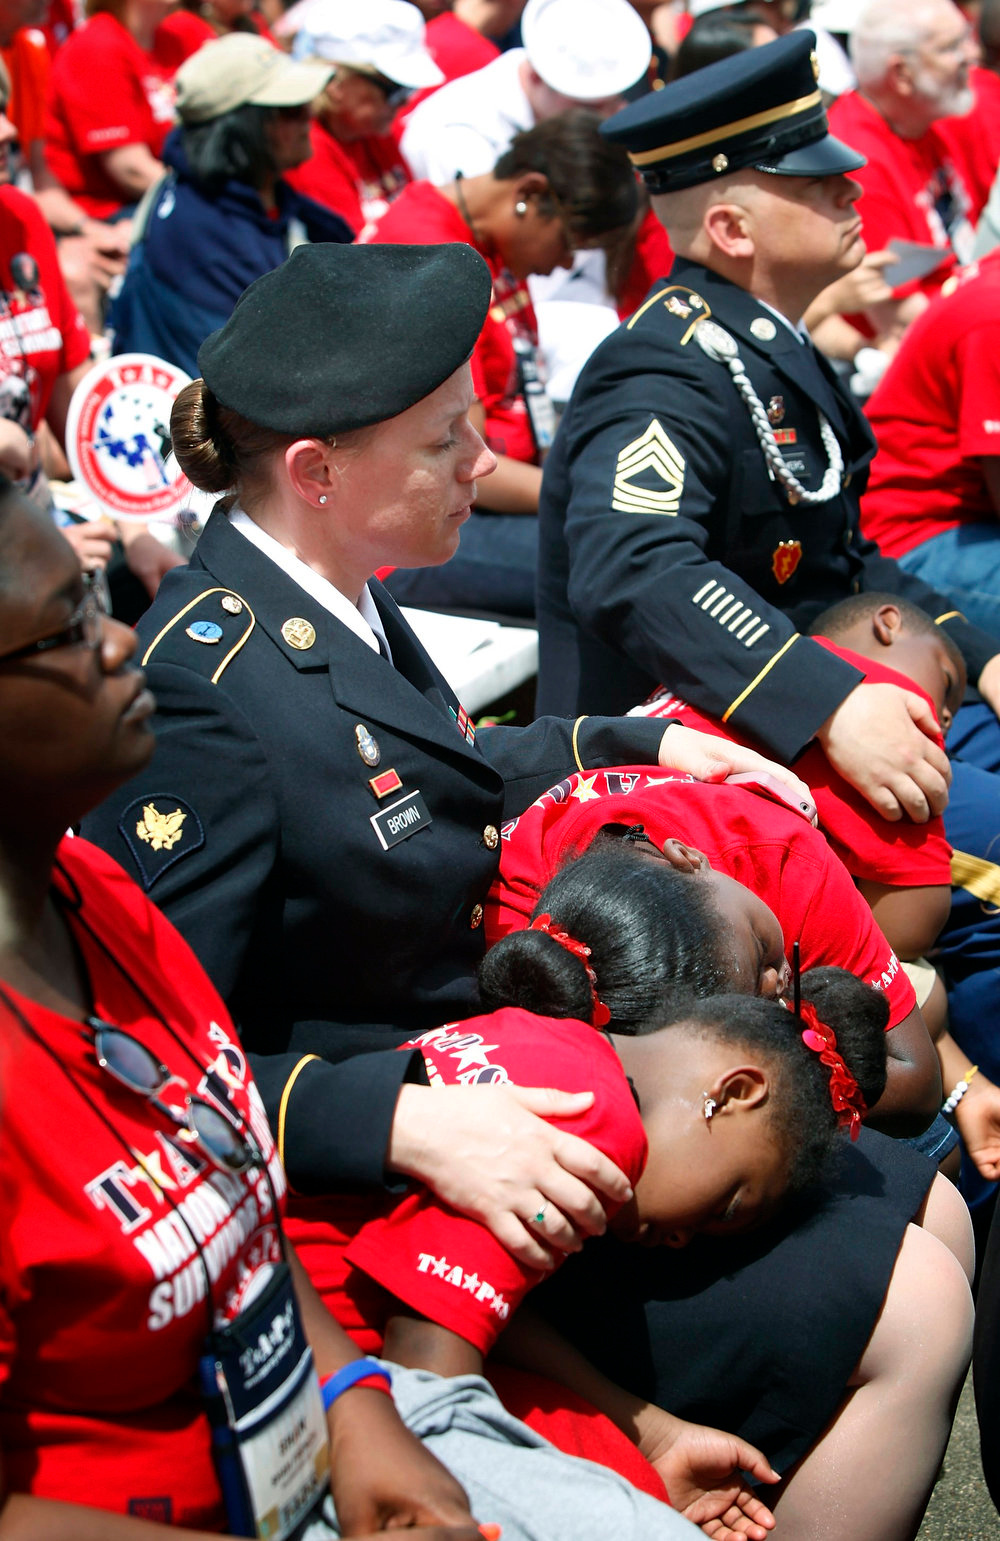 . Soldiers cradle sleeping children as U.S. President Barack Obama makes remarks during Memorial Day observances at Arlington National Cemetery in Arlington, Virginia, May 27, 2013. REUTERS/Jonathan Ernst